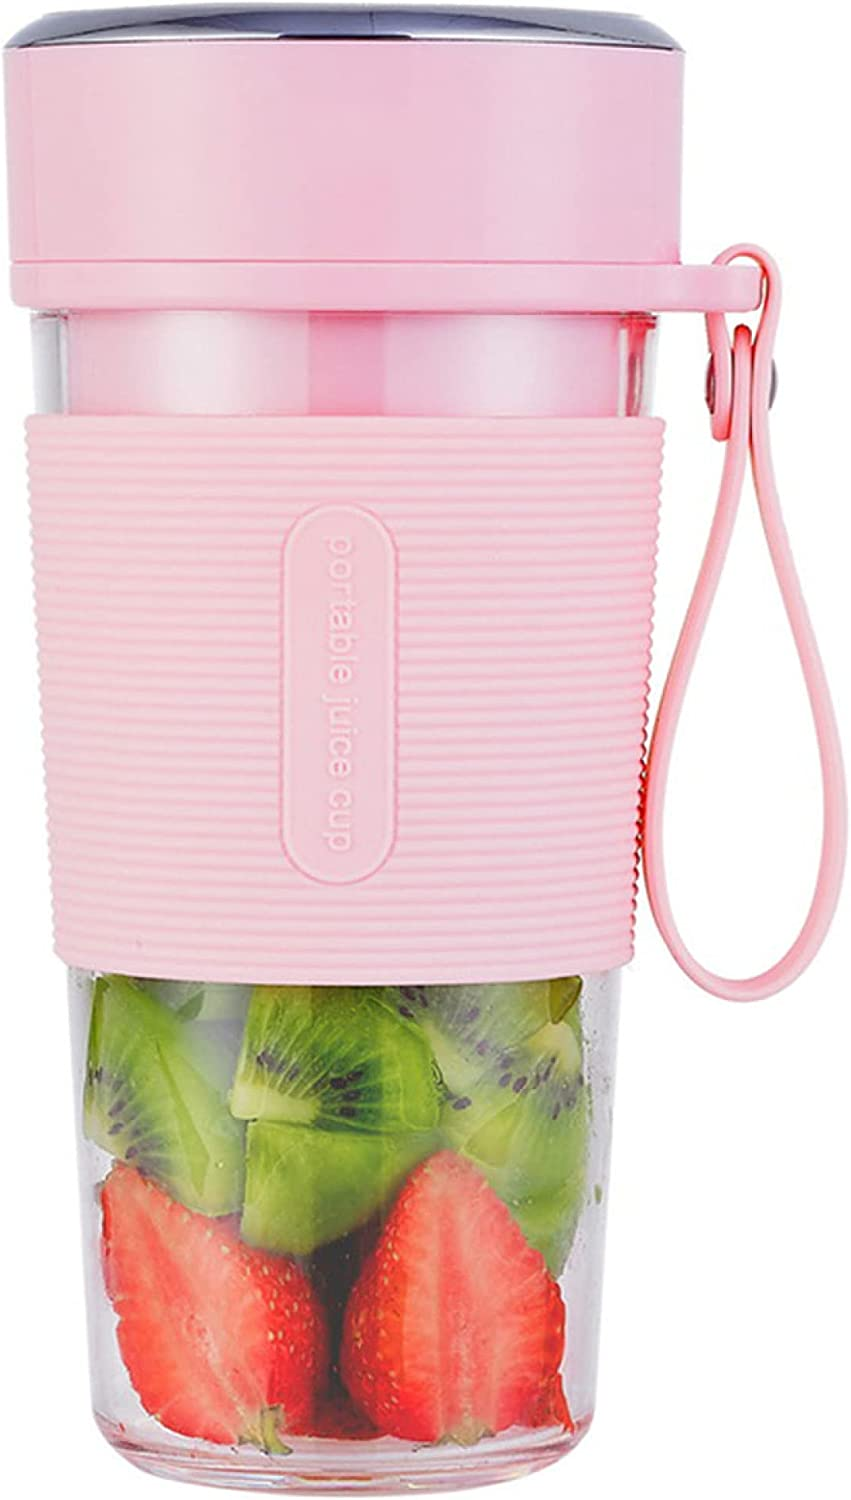 Genuine Mini Electric NEW before selling ☆ Portable Blender Juicer Cup USB Rechargeable Food